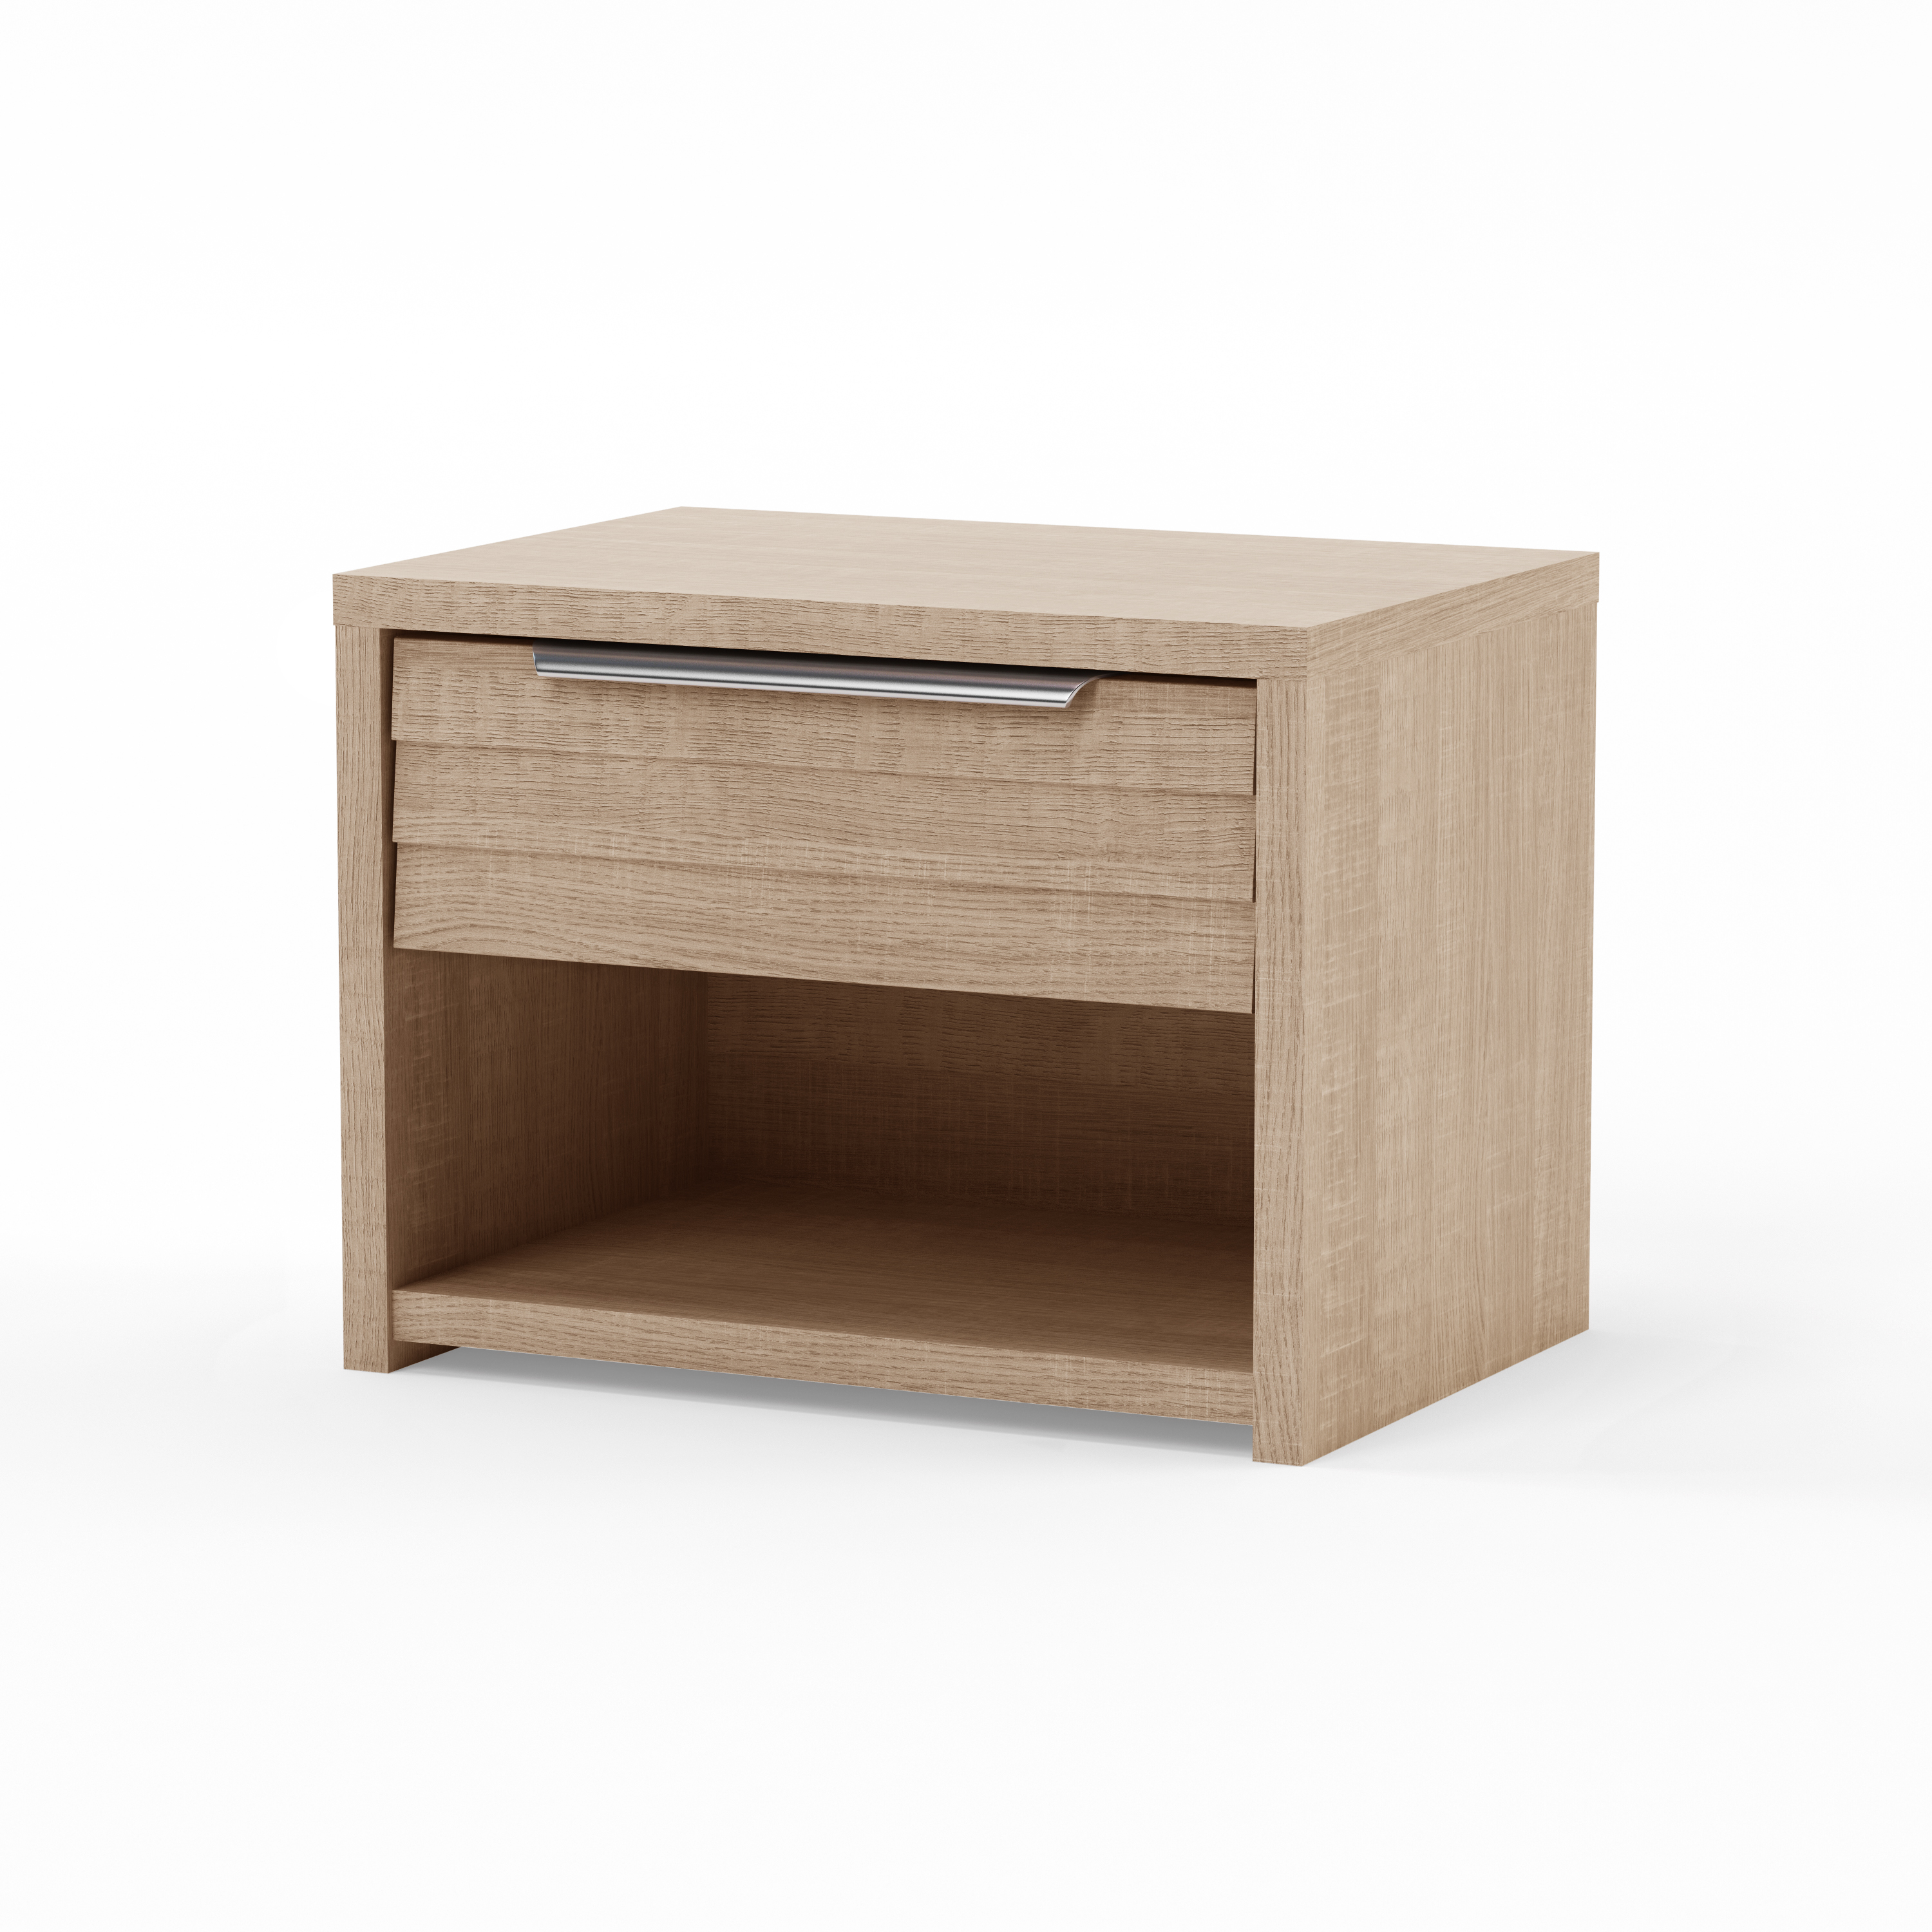 Table de chevet bois clair maison design - But table de chevet ...